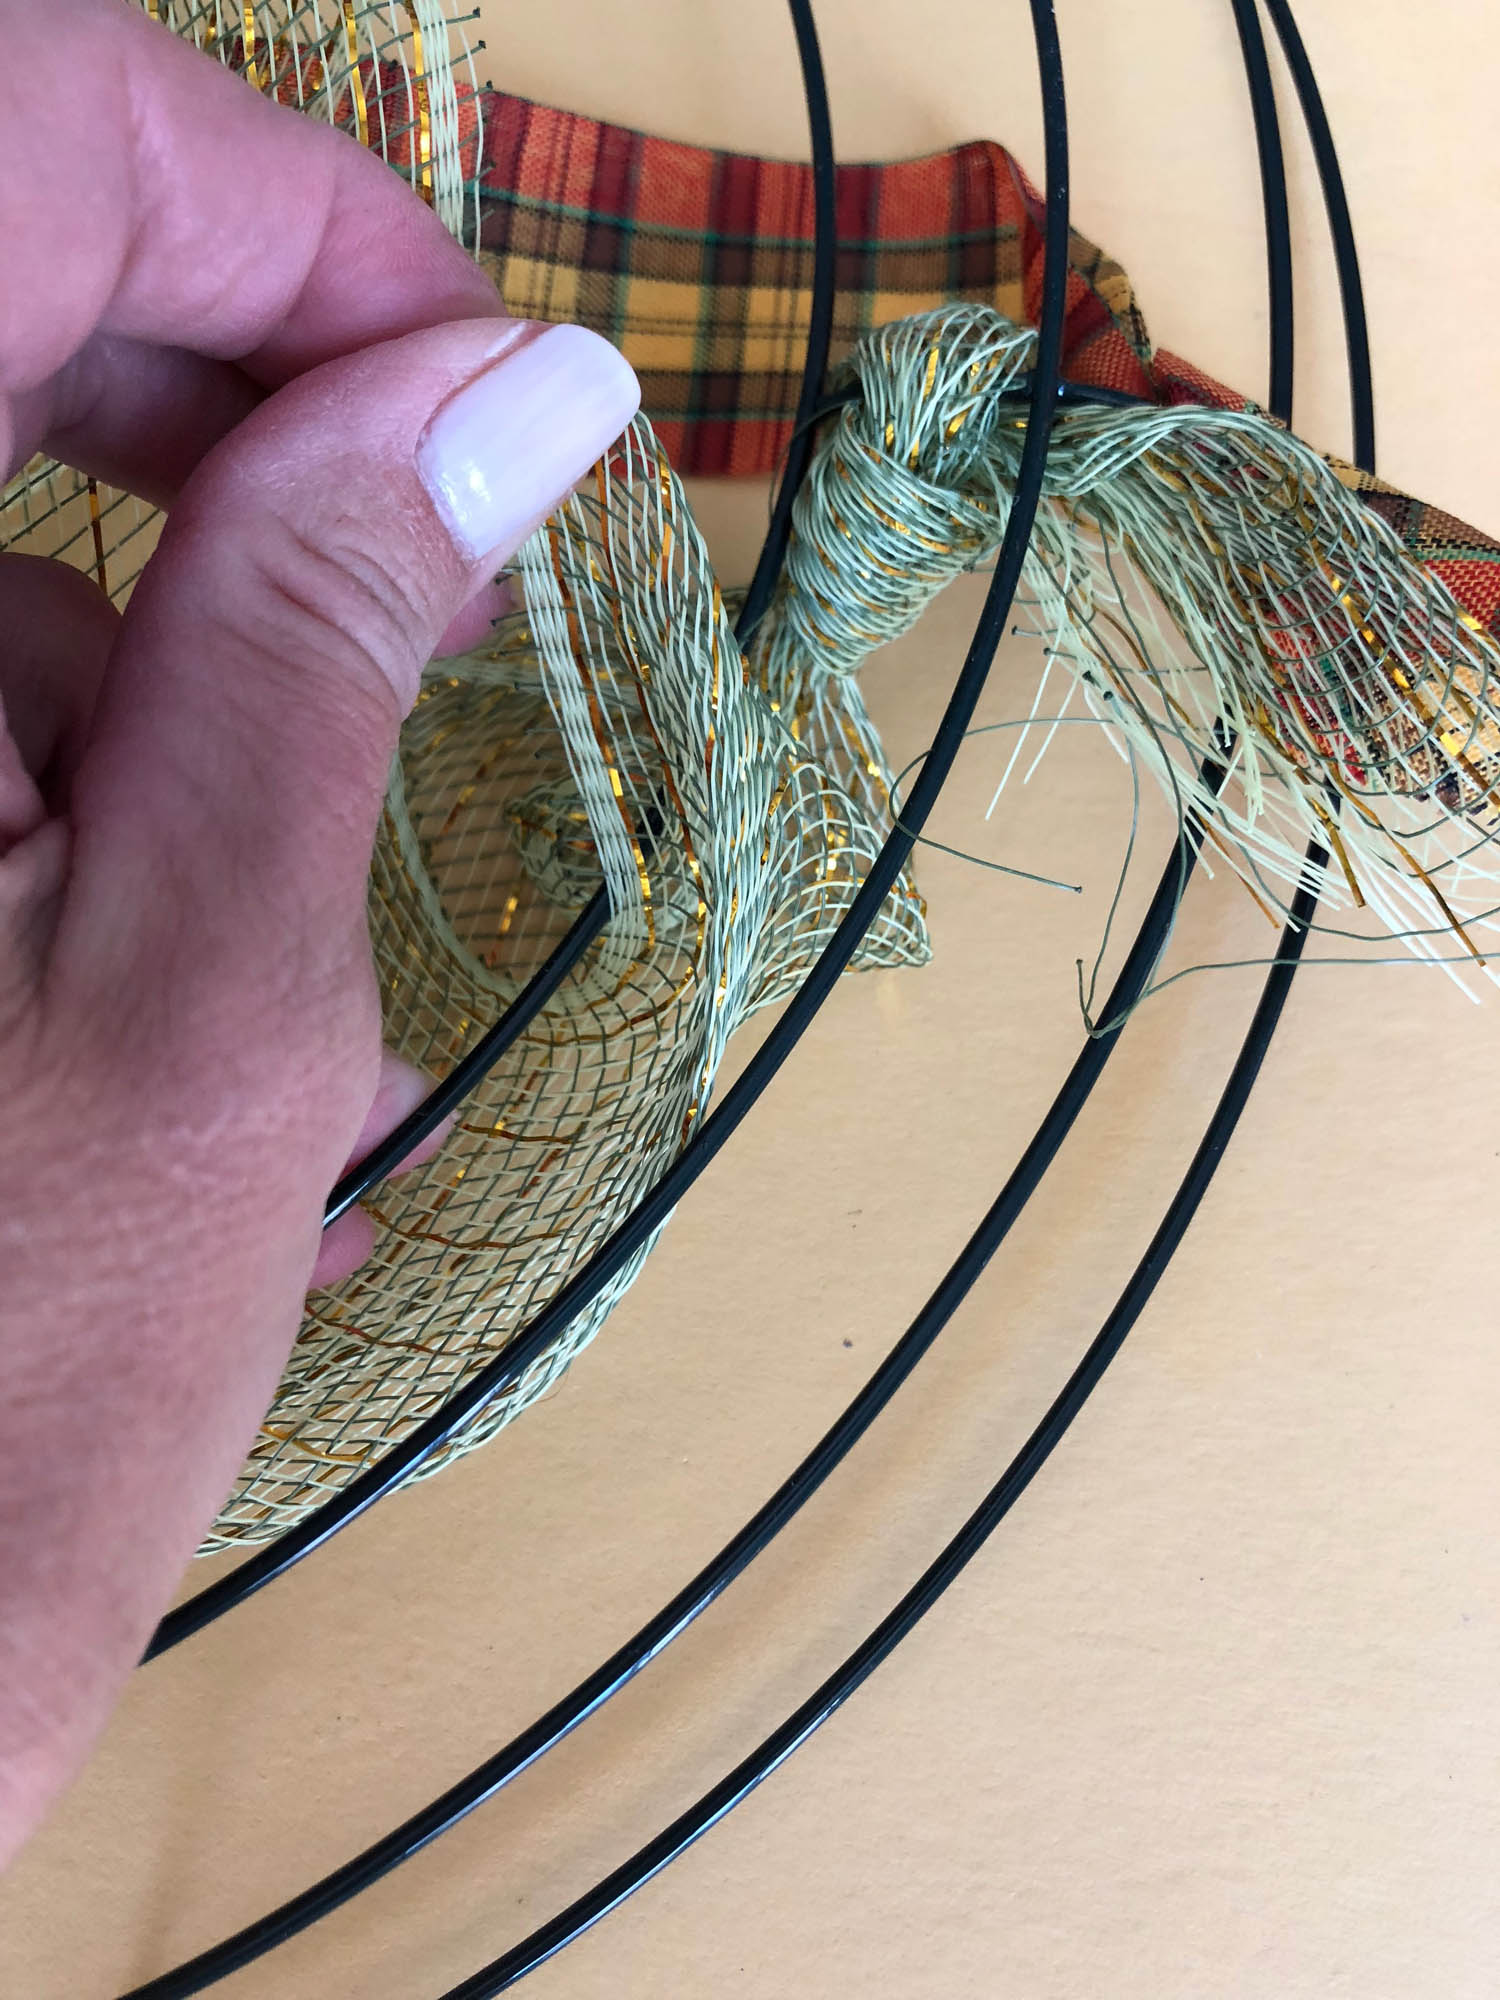 weaving the wired ribbon through the metal wreath frame